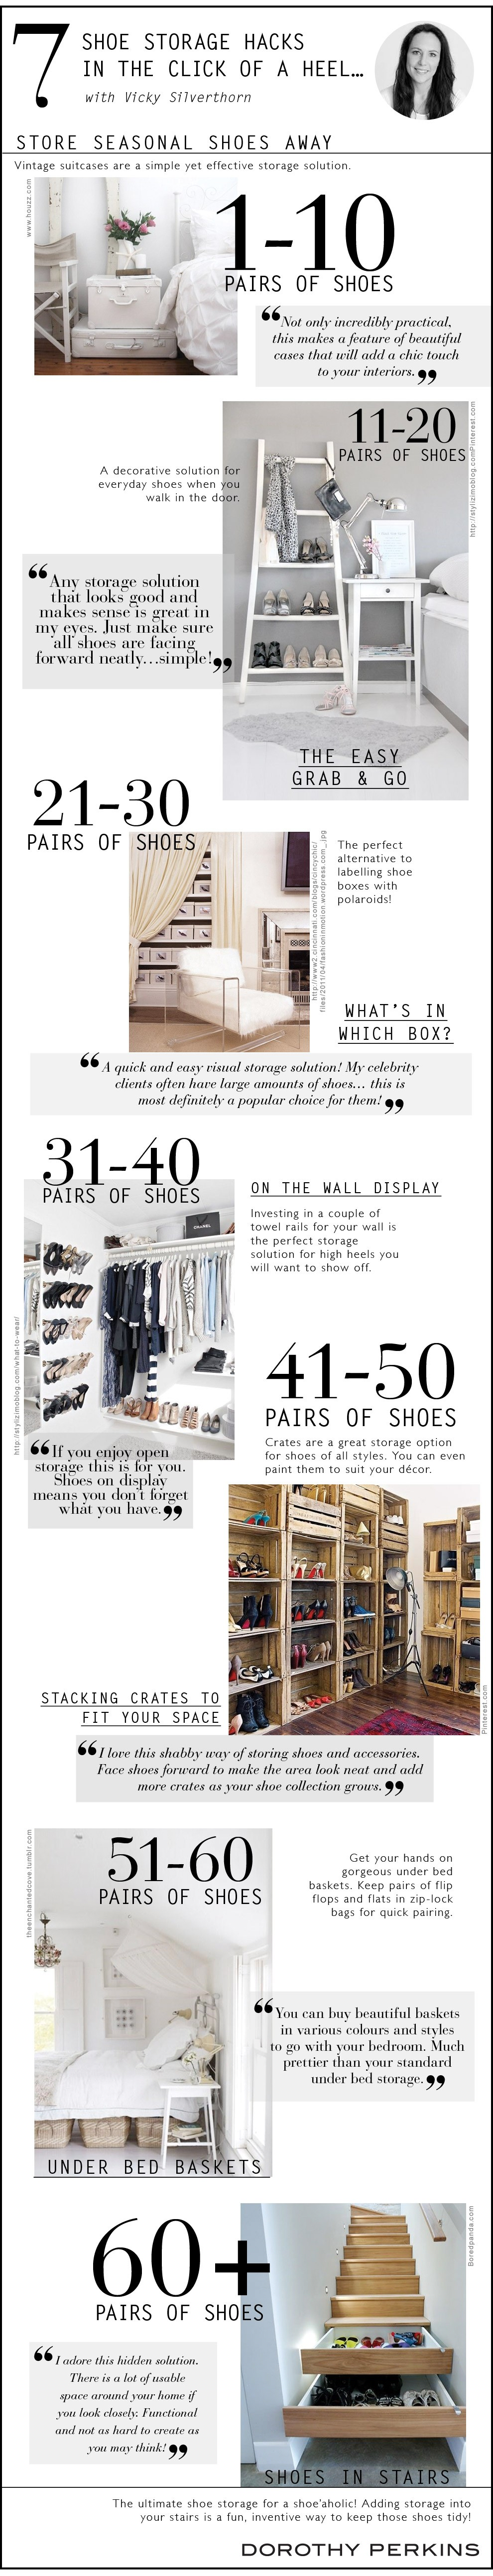 Shoe Storage Hacks in The Click of a Heel